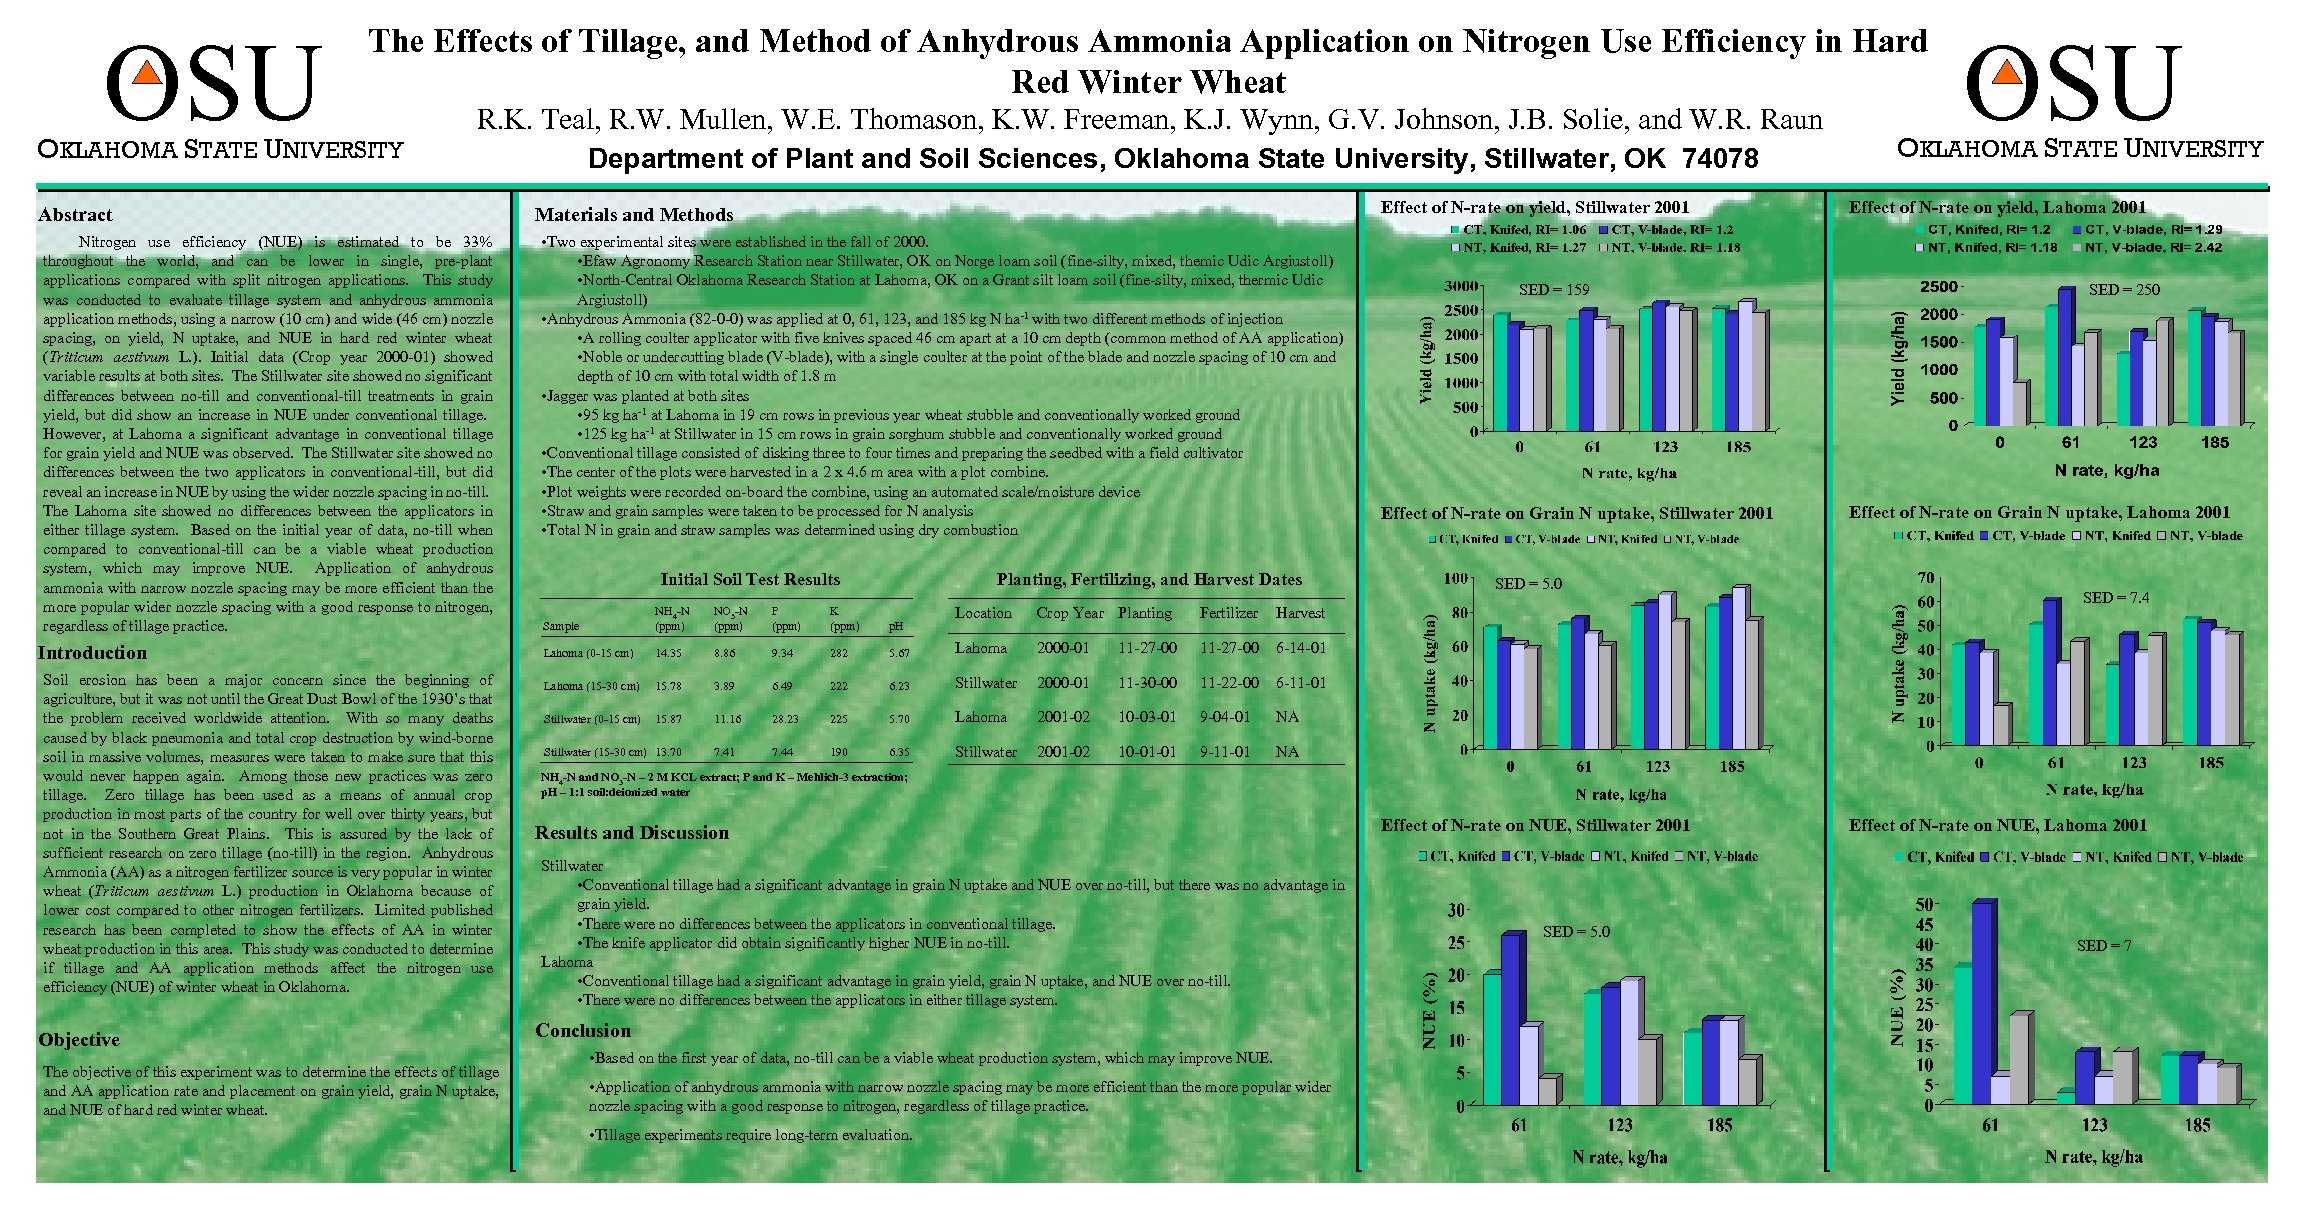 OSU The Effects of Tillage, and Method of Anhydrous Ammonia Application on Nitrogen Use